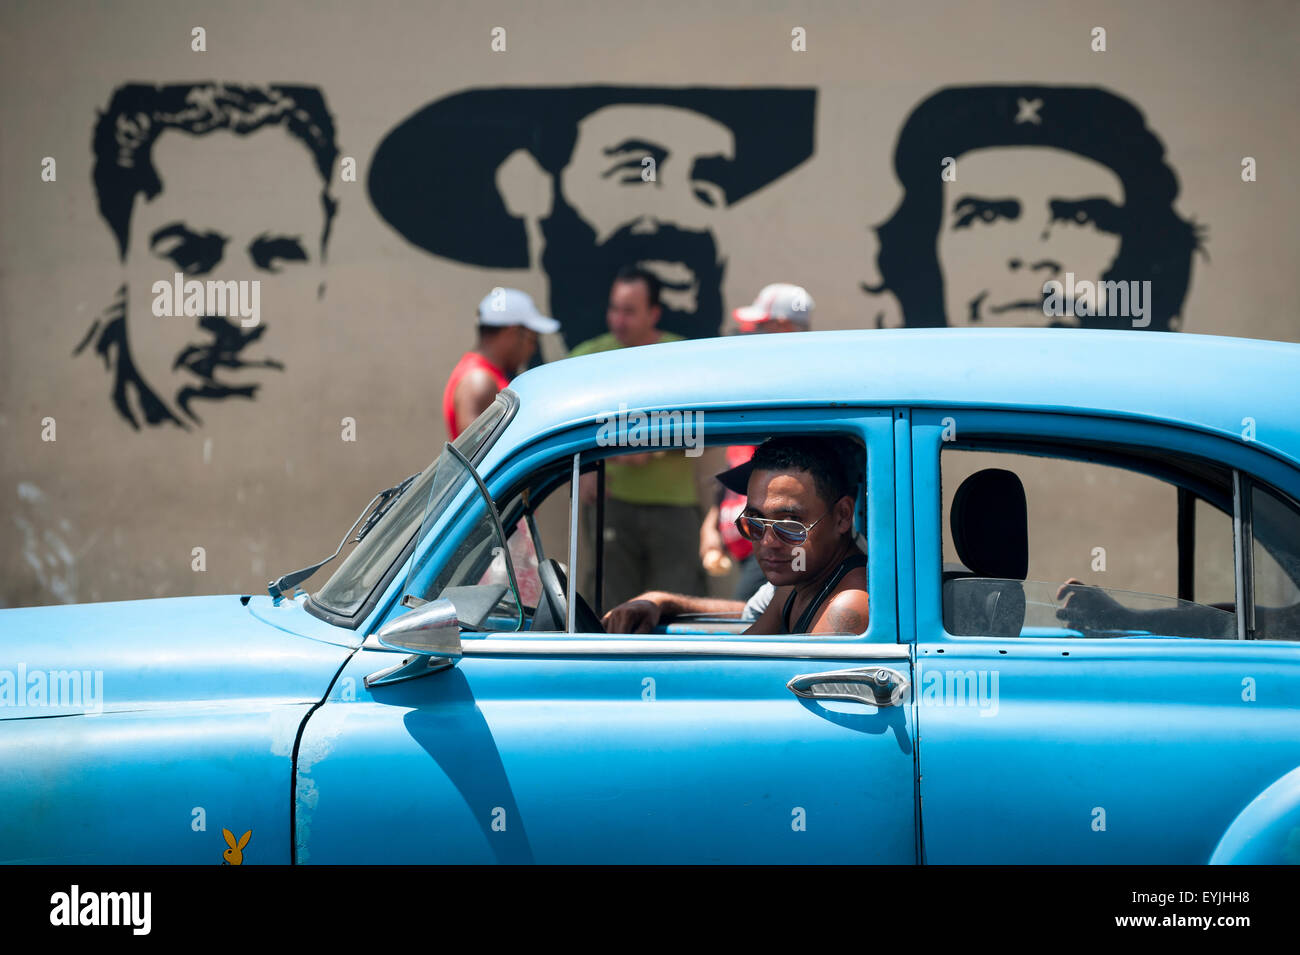 HAVANA, CUBA - JUNE, 2011: Pedestrians and classic American cars pass in front of stencil billboard featuring Communist - Stock Image